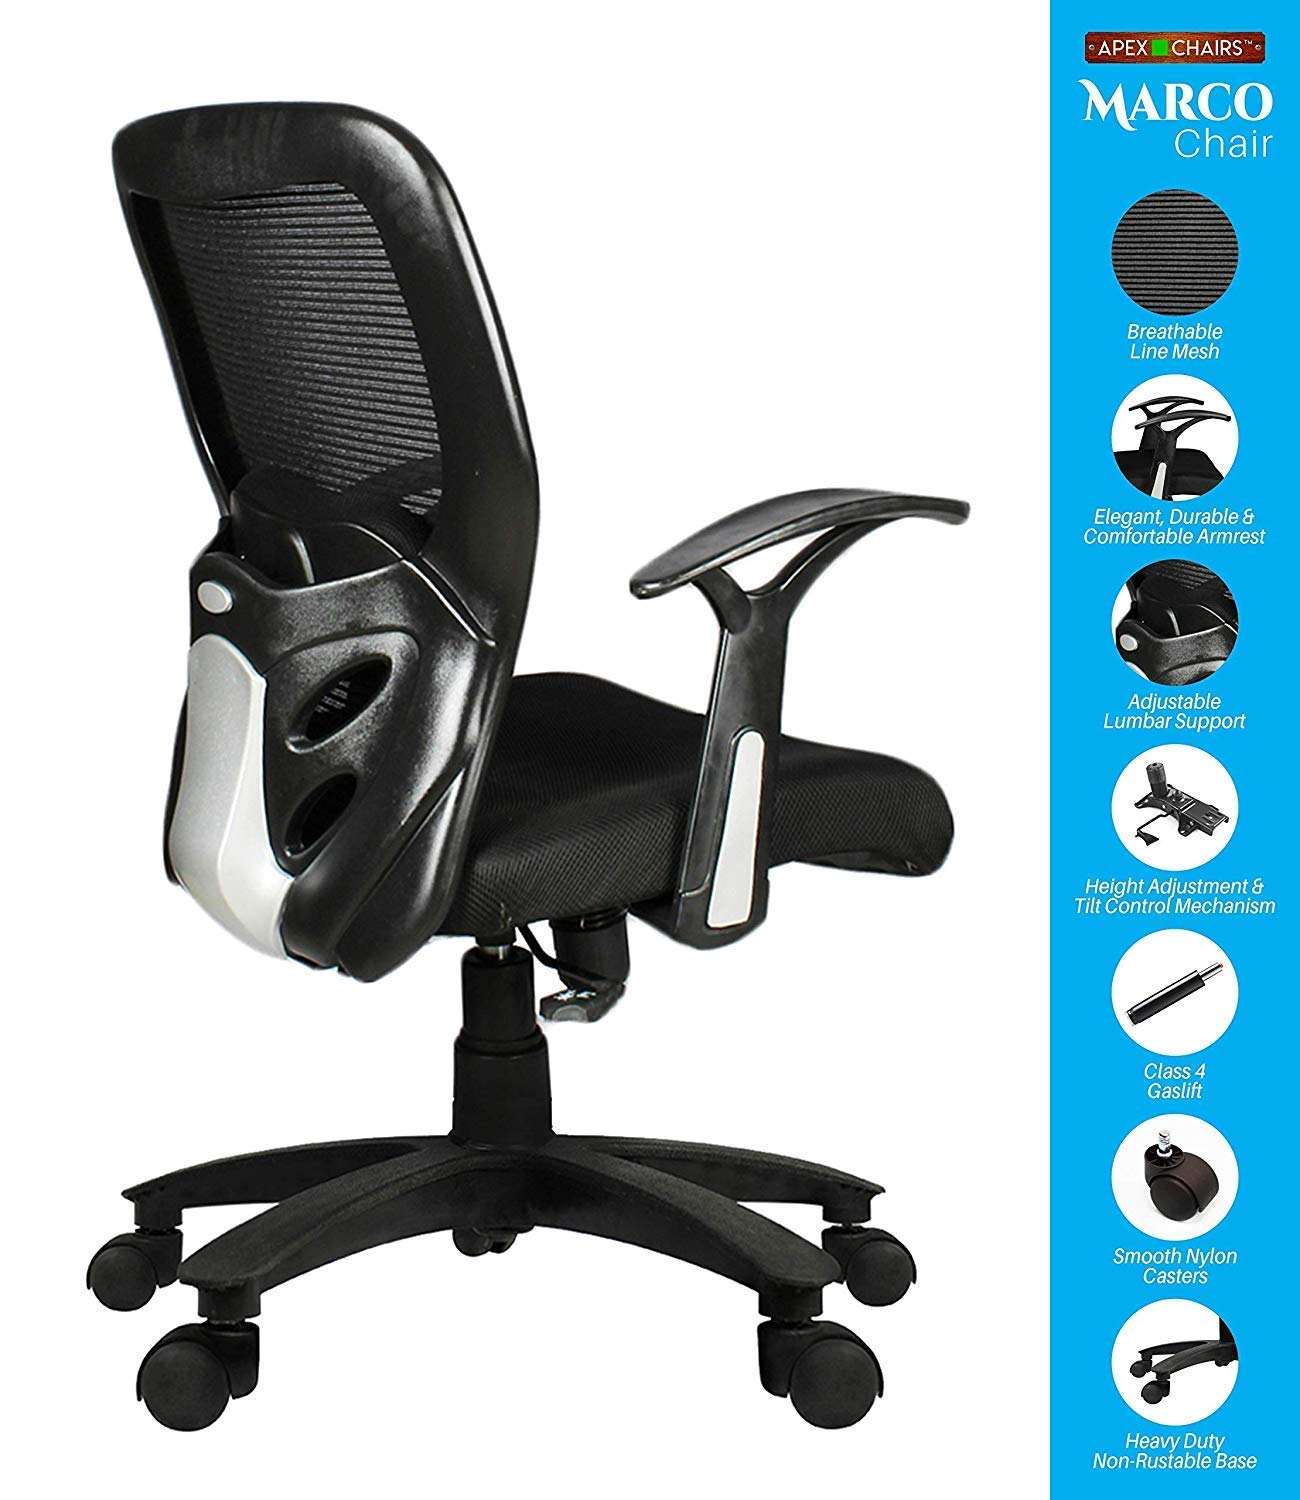 SAVYA HOME APEX Chairs MARCOZY Star Base Medium Back Office Chair Standard Black